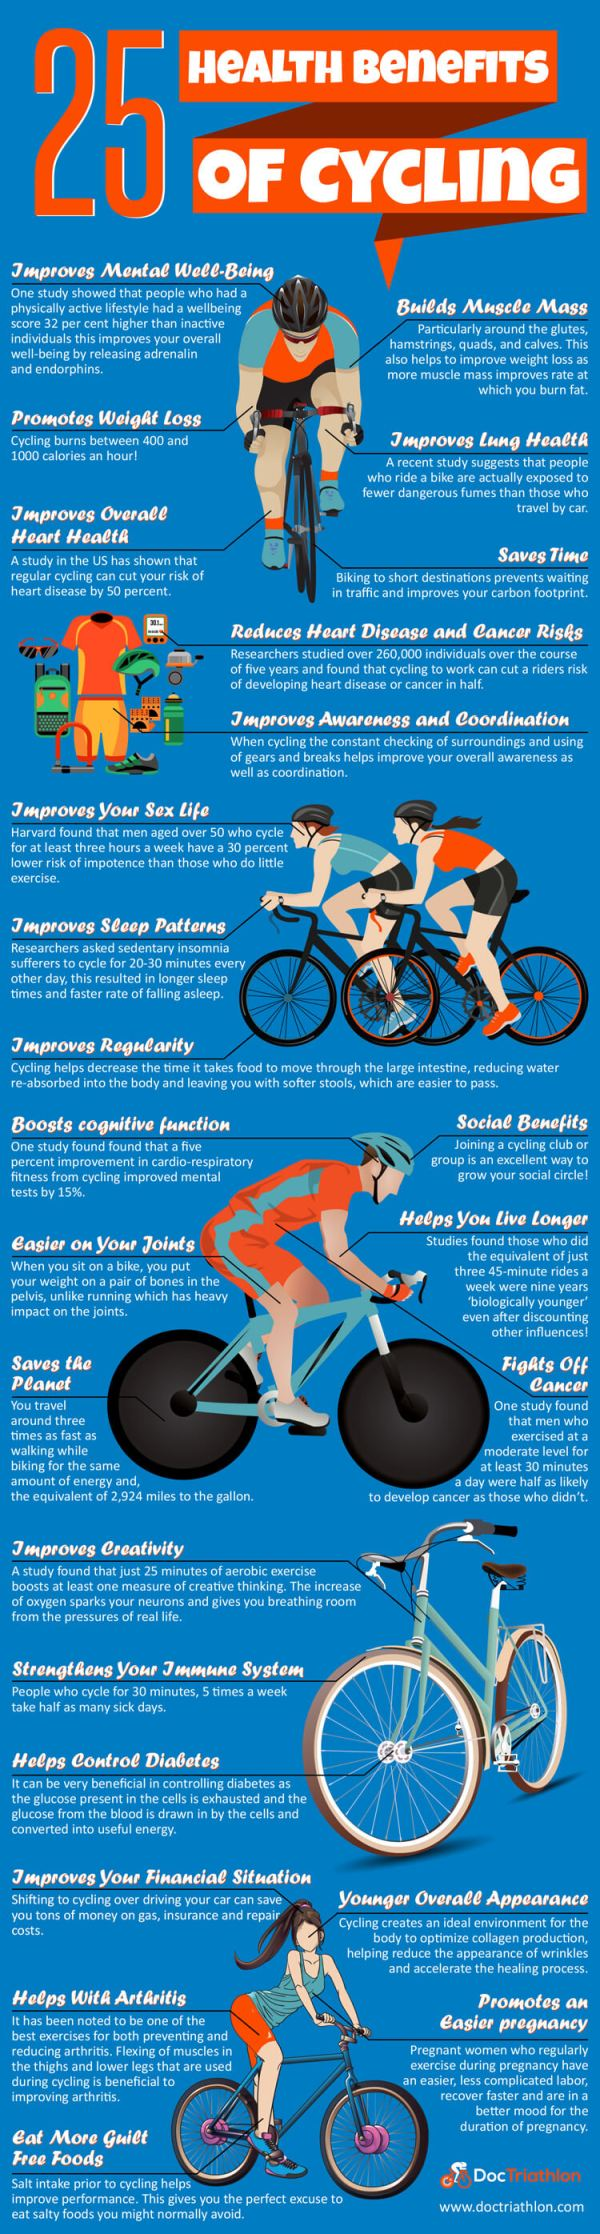 25_Health_Benefits_of_Cycling-infographic